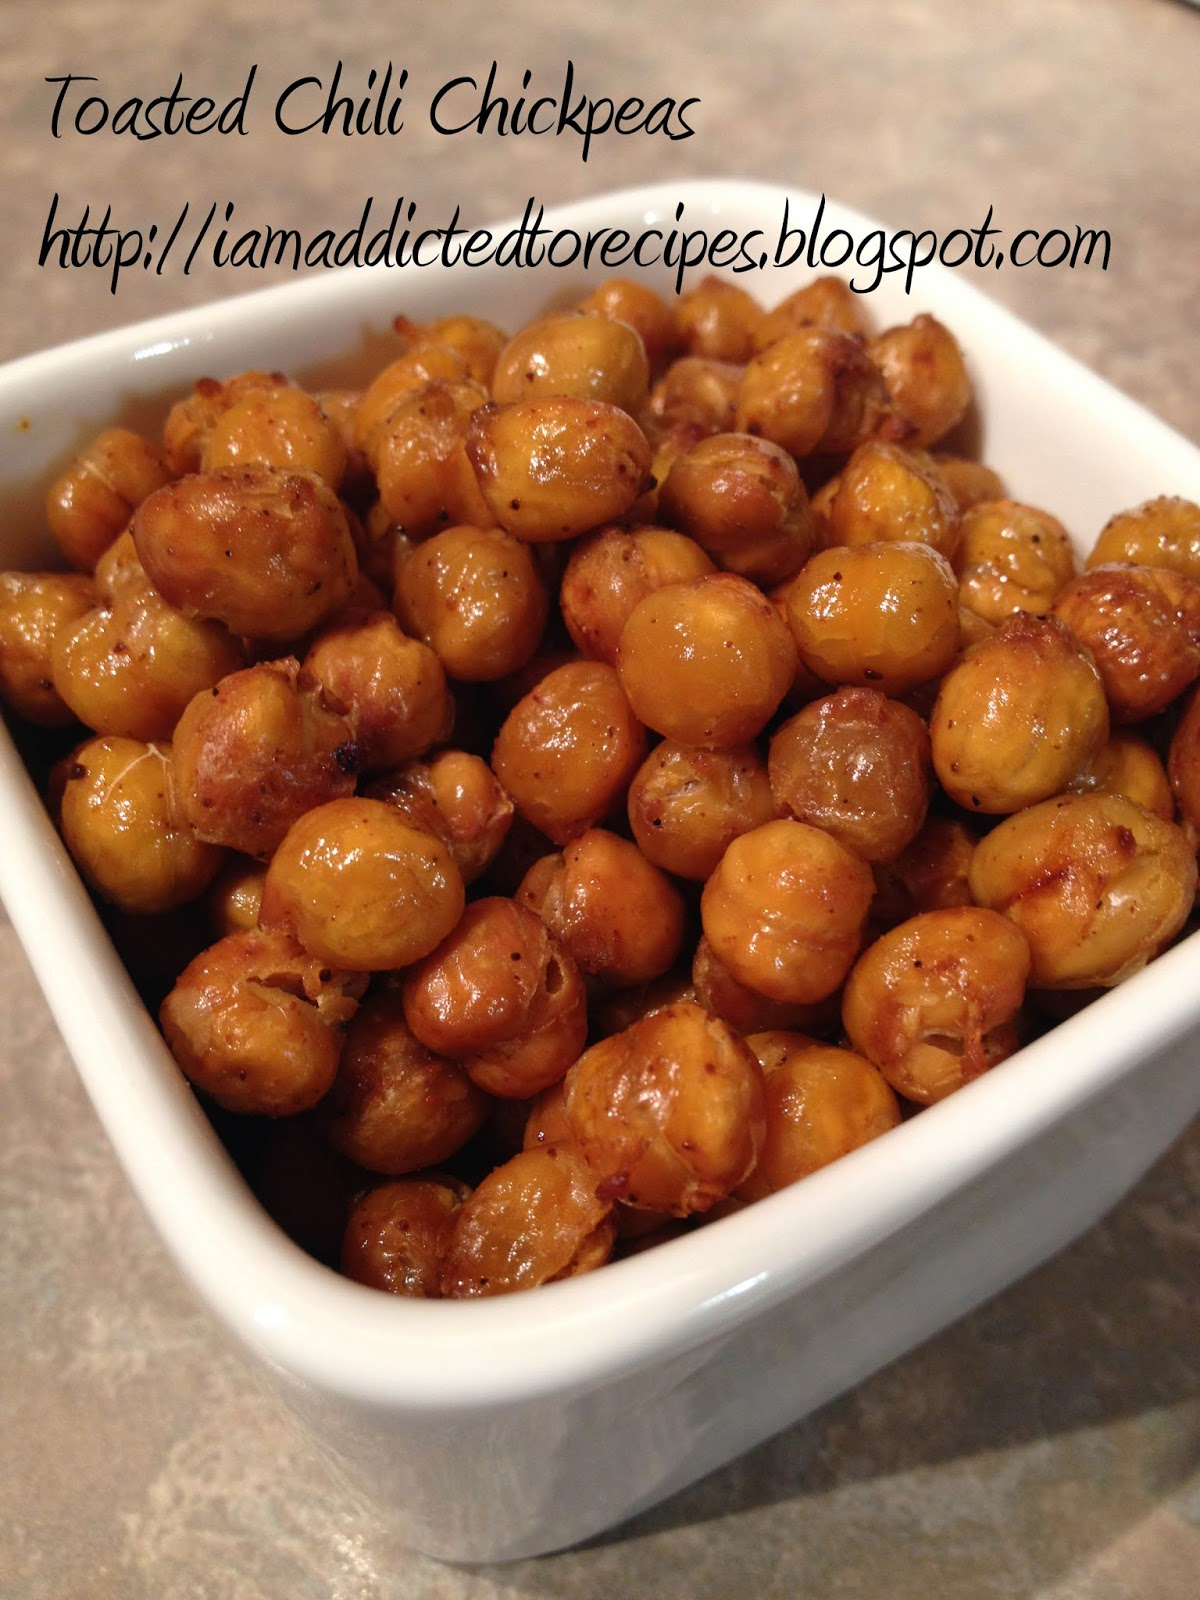 Toasted Chili Chickpeas | Addicted to Recipes